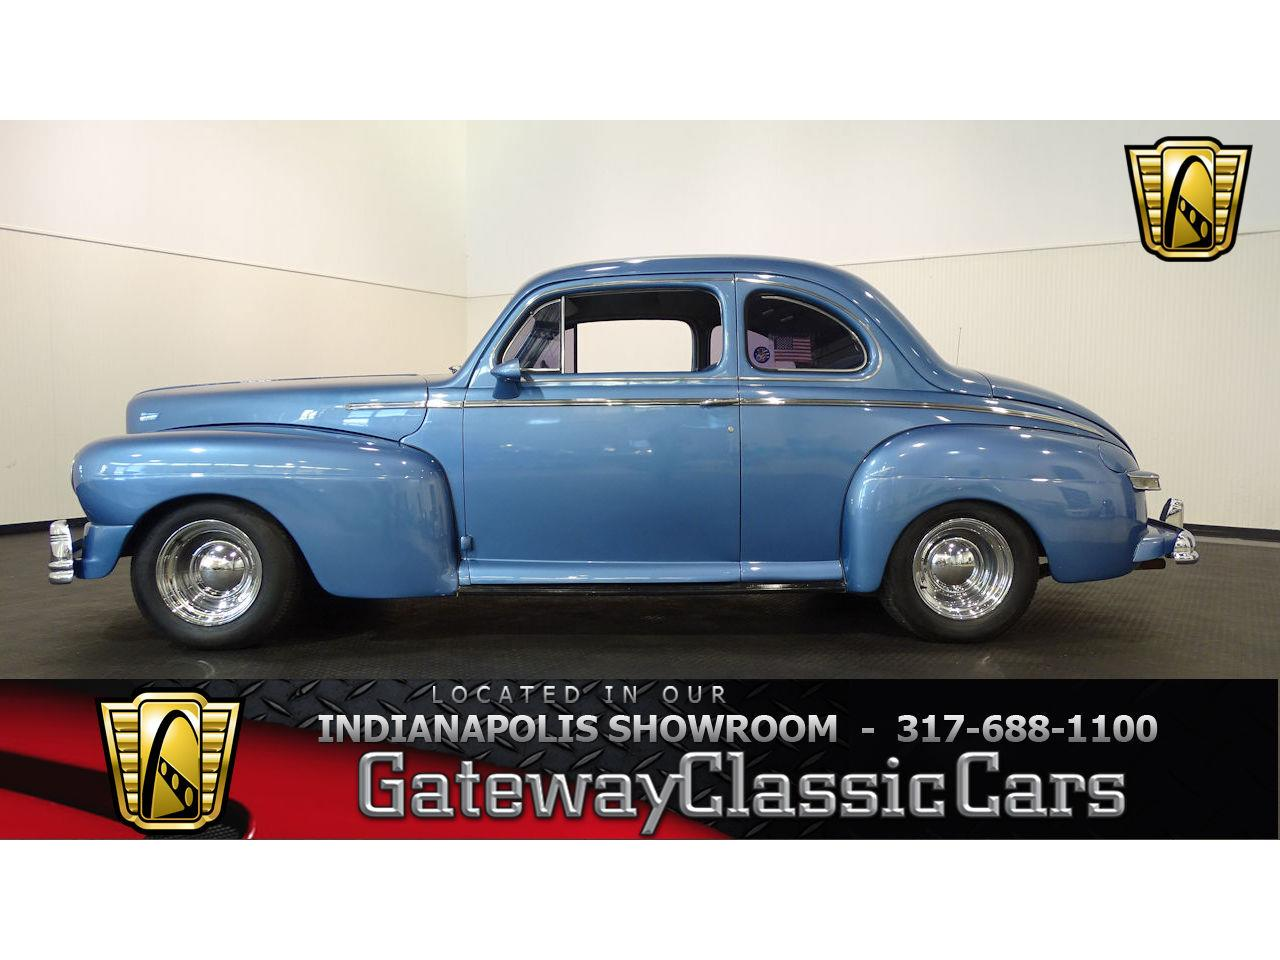 Large Picture of 1947 Mercury Coupe located in Indiana - $19,995.00 - MFNJ